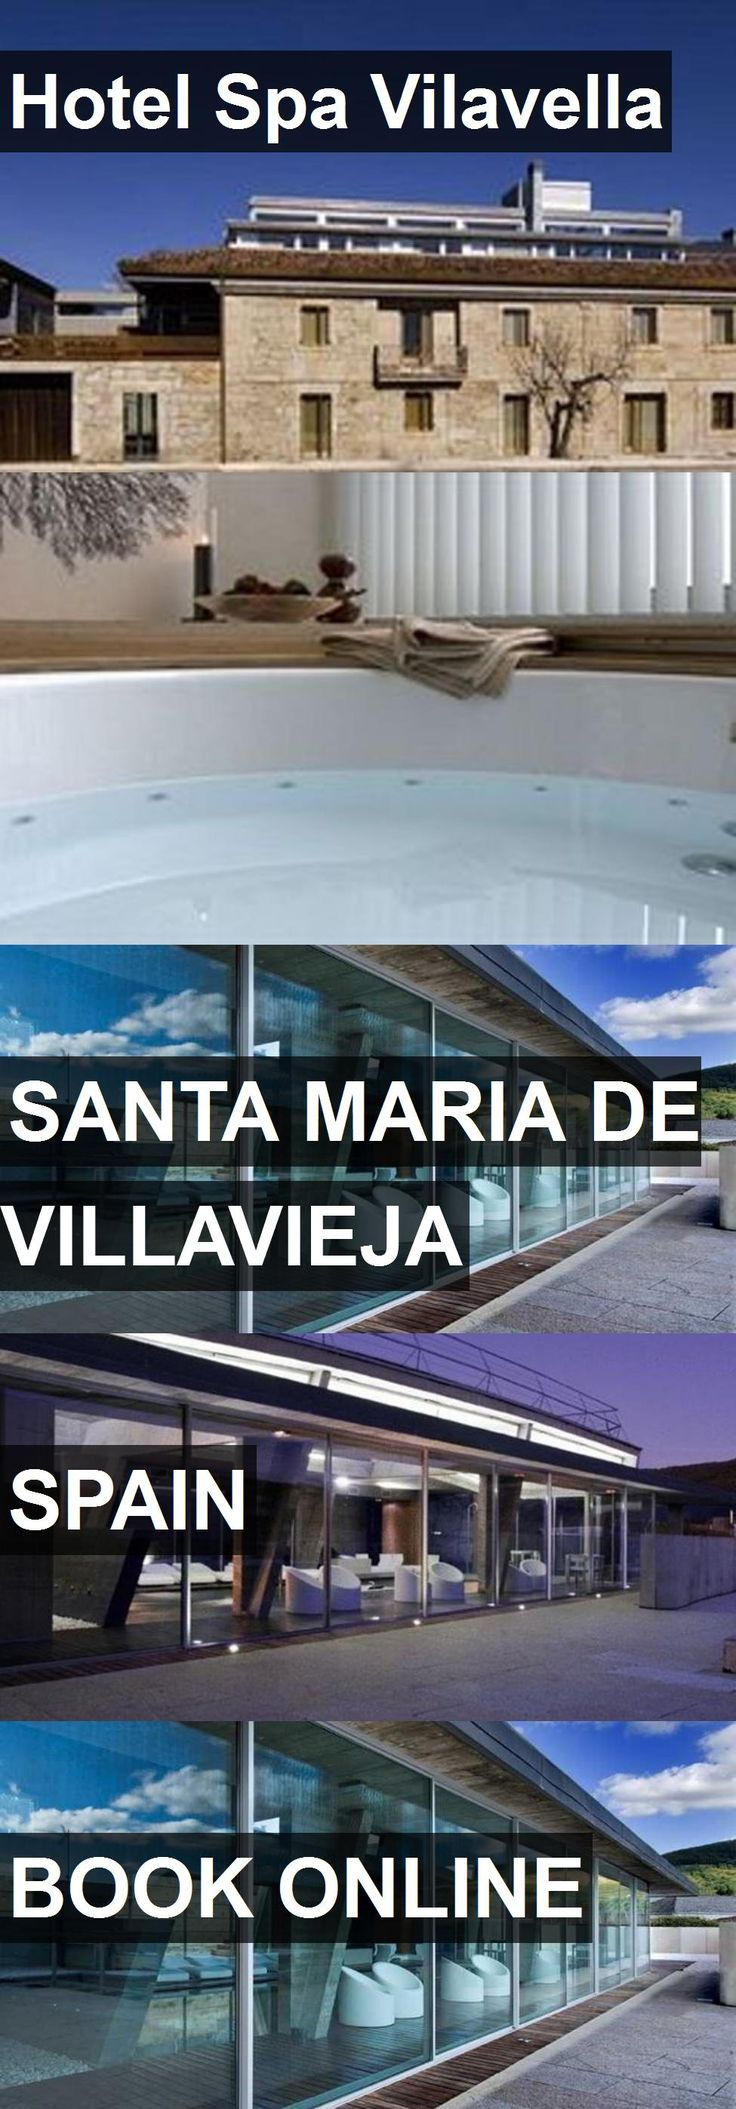 Hotel Spa Vilavella in Santa Maria de Villavieja, Spain. For more information, photos, reviews and best prices please follow the link. #Spain #SantaMariadeVillavieja #travel #vacation #hotel